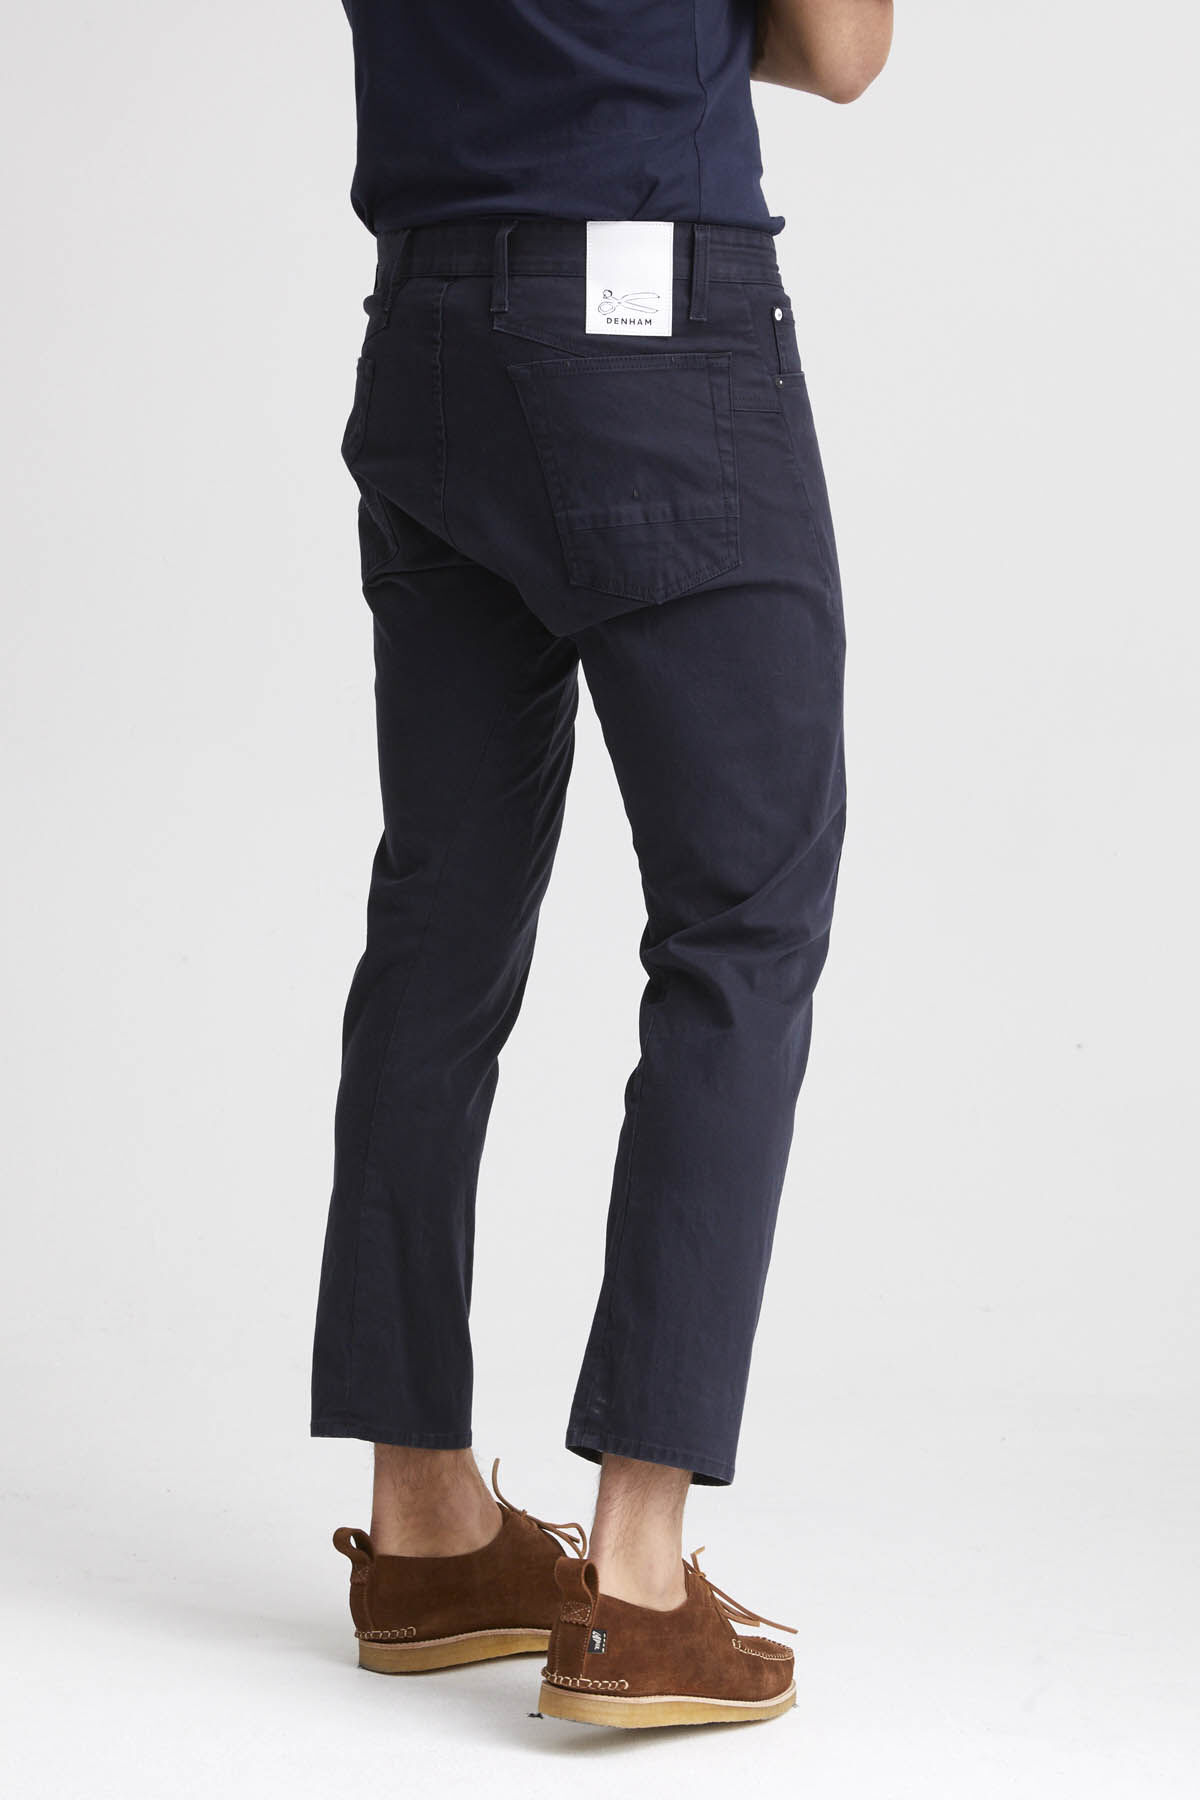 KINETIC Garment Dyed Denim - Tapered Fit